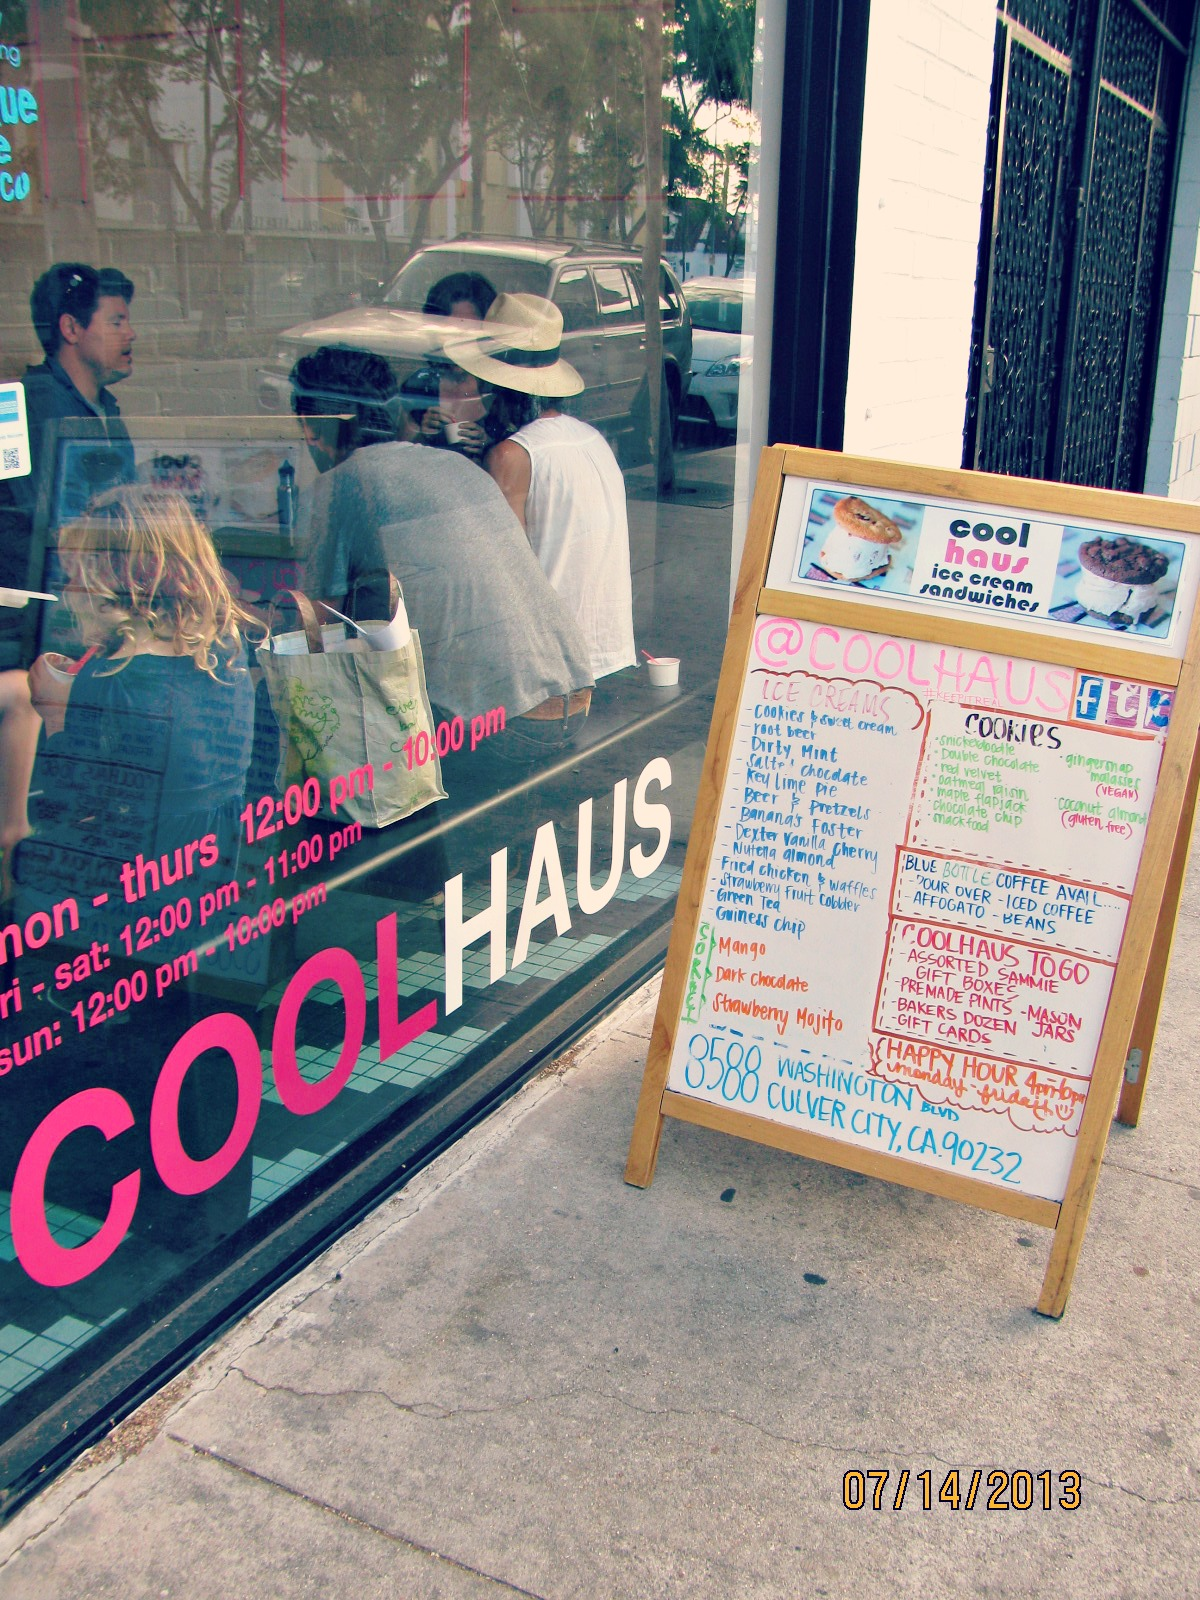 Coolhaus- Storefront, Hours, & Menu